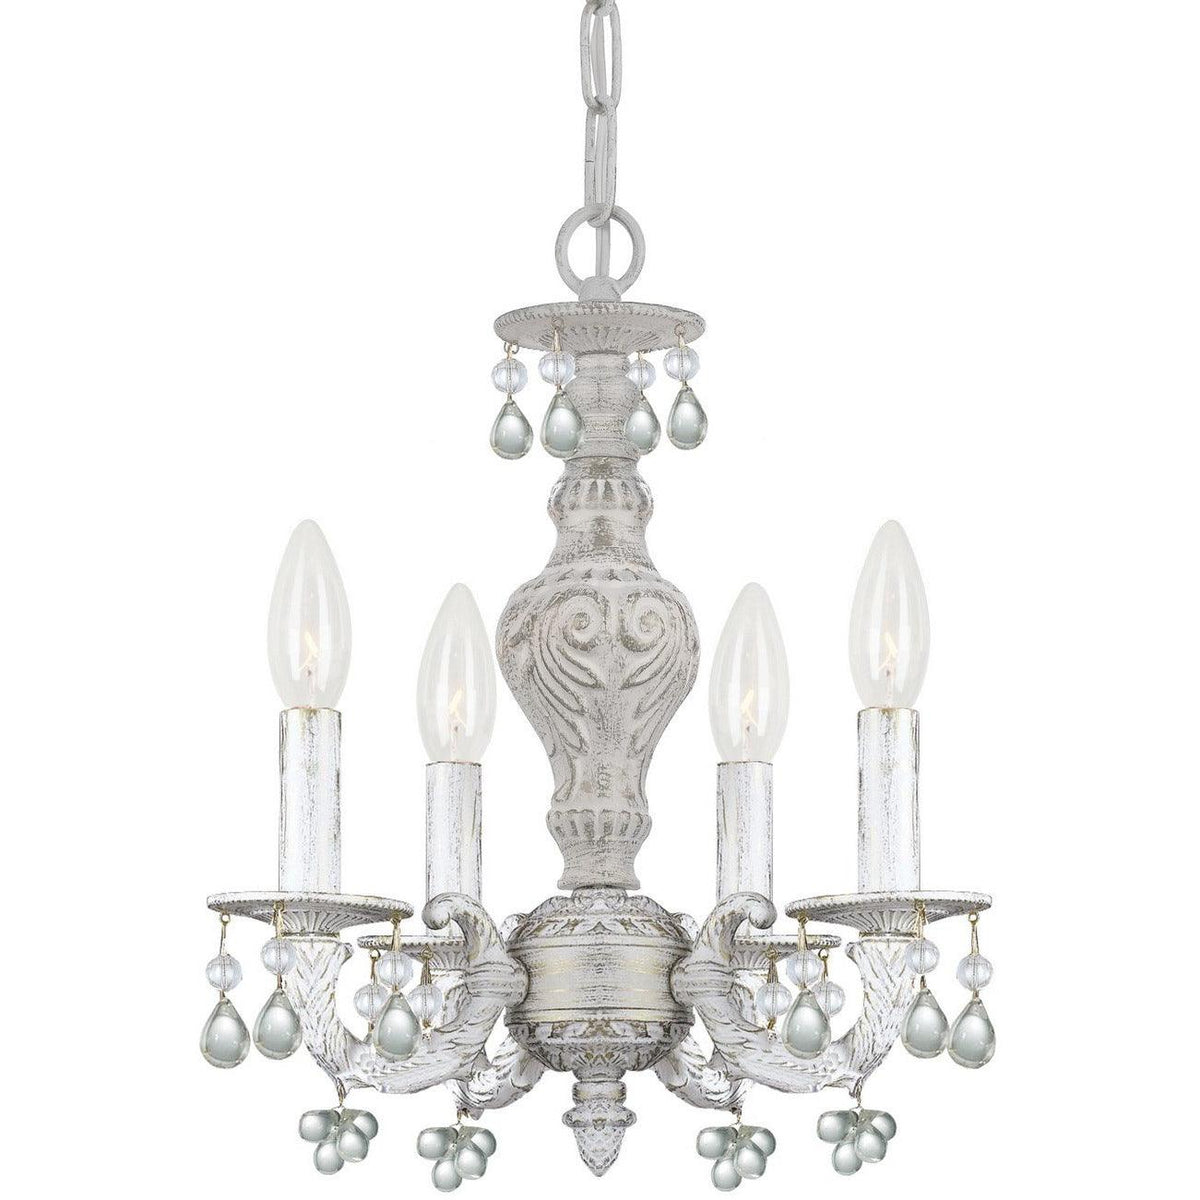 Crystorama - 5224-AW-CLEAR - Four Light Mini Chandelier - Paris Market - Antique White